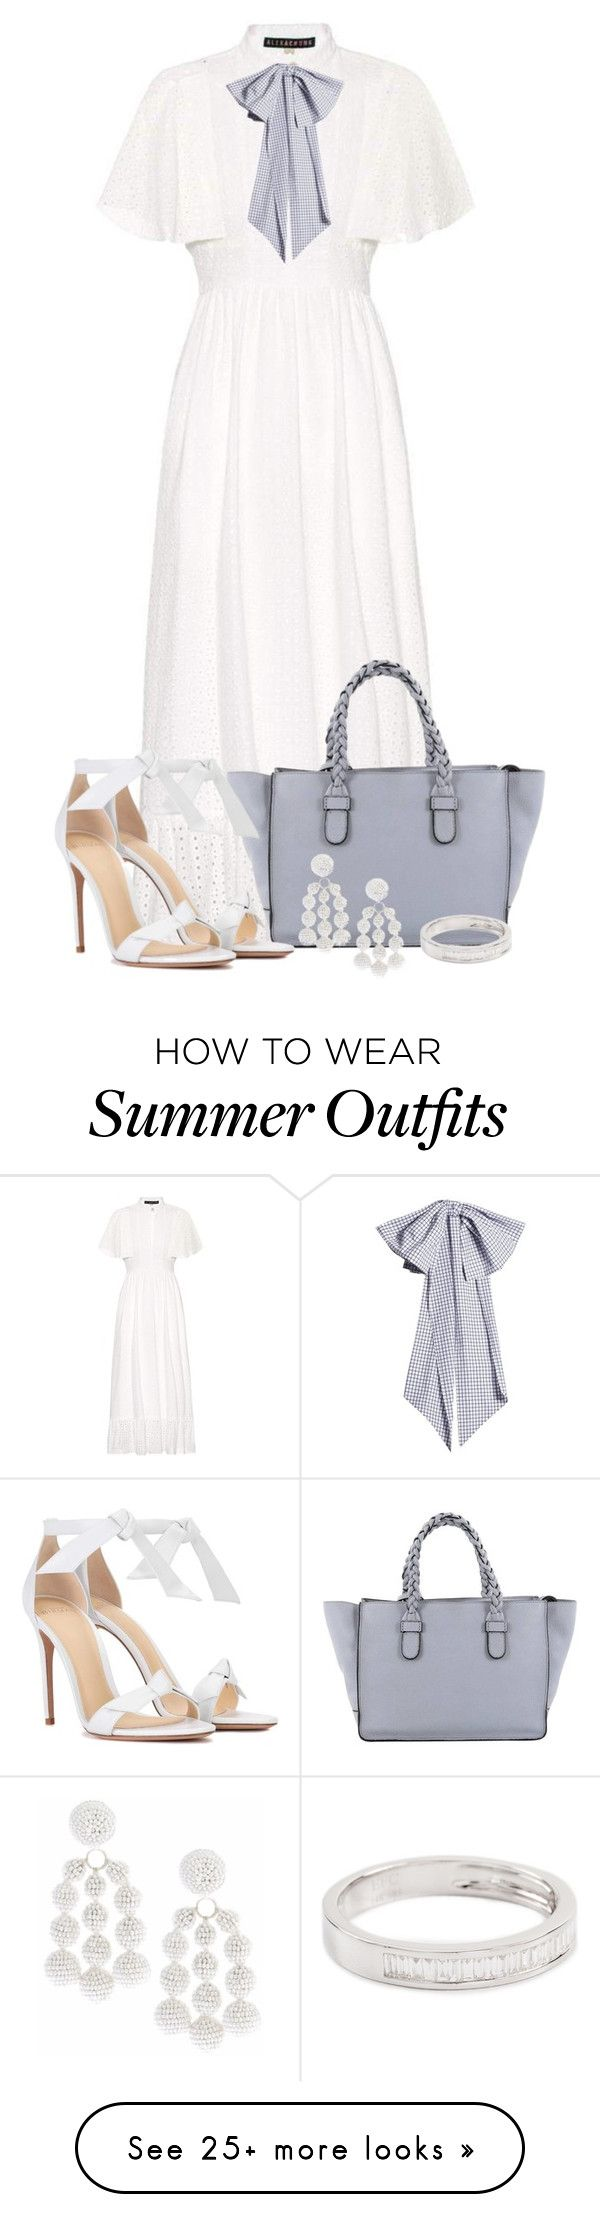 """""""Summer Outfit 8"""" by larycao on Polyvore featuring AlexaChung, Valentino, Alexandre Birman, Sachin + Babi, EF Collection and Dovima Paris"""